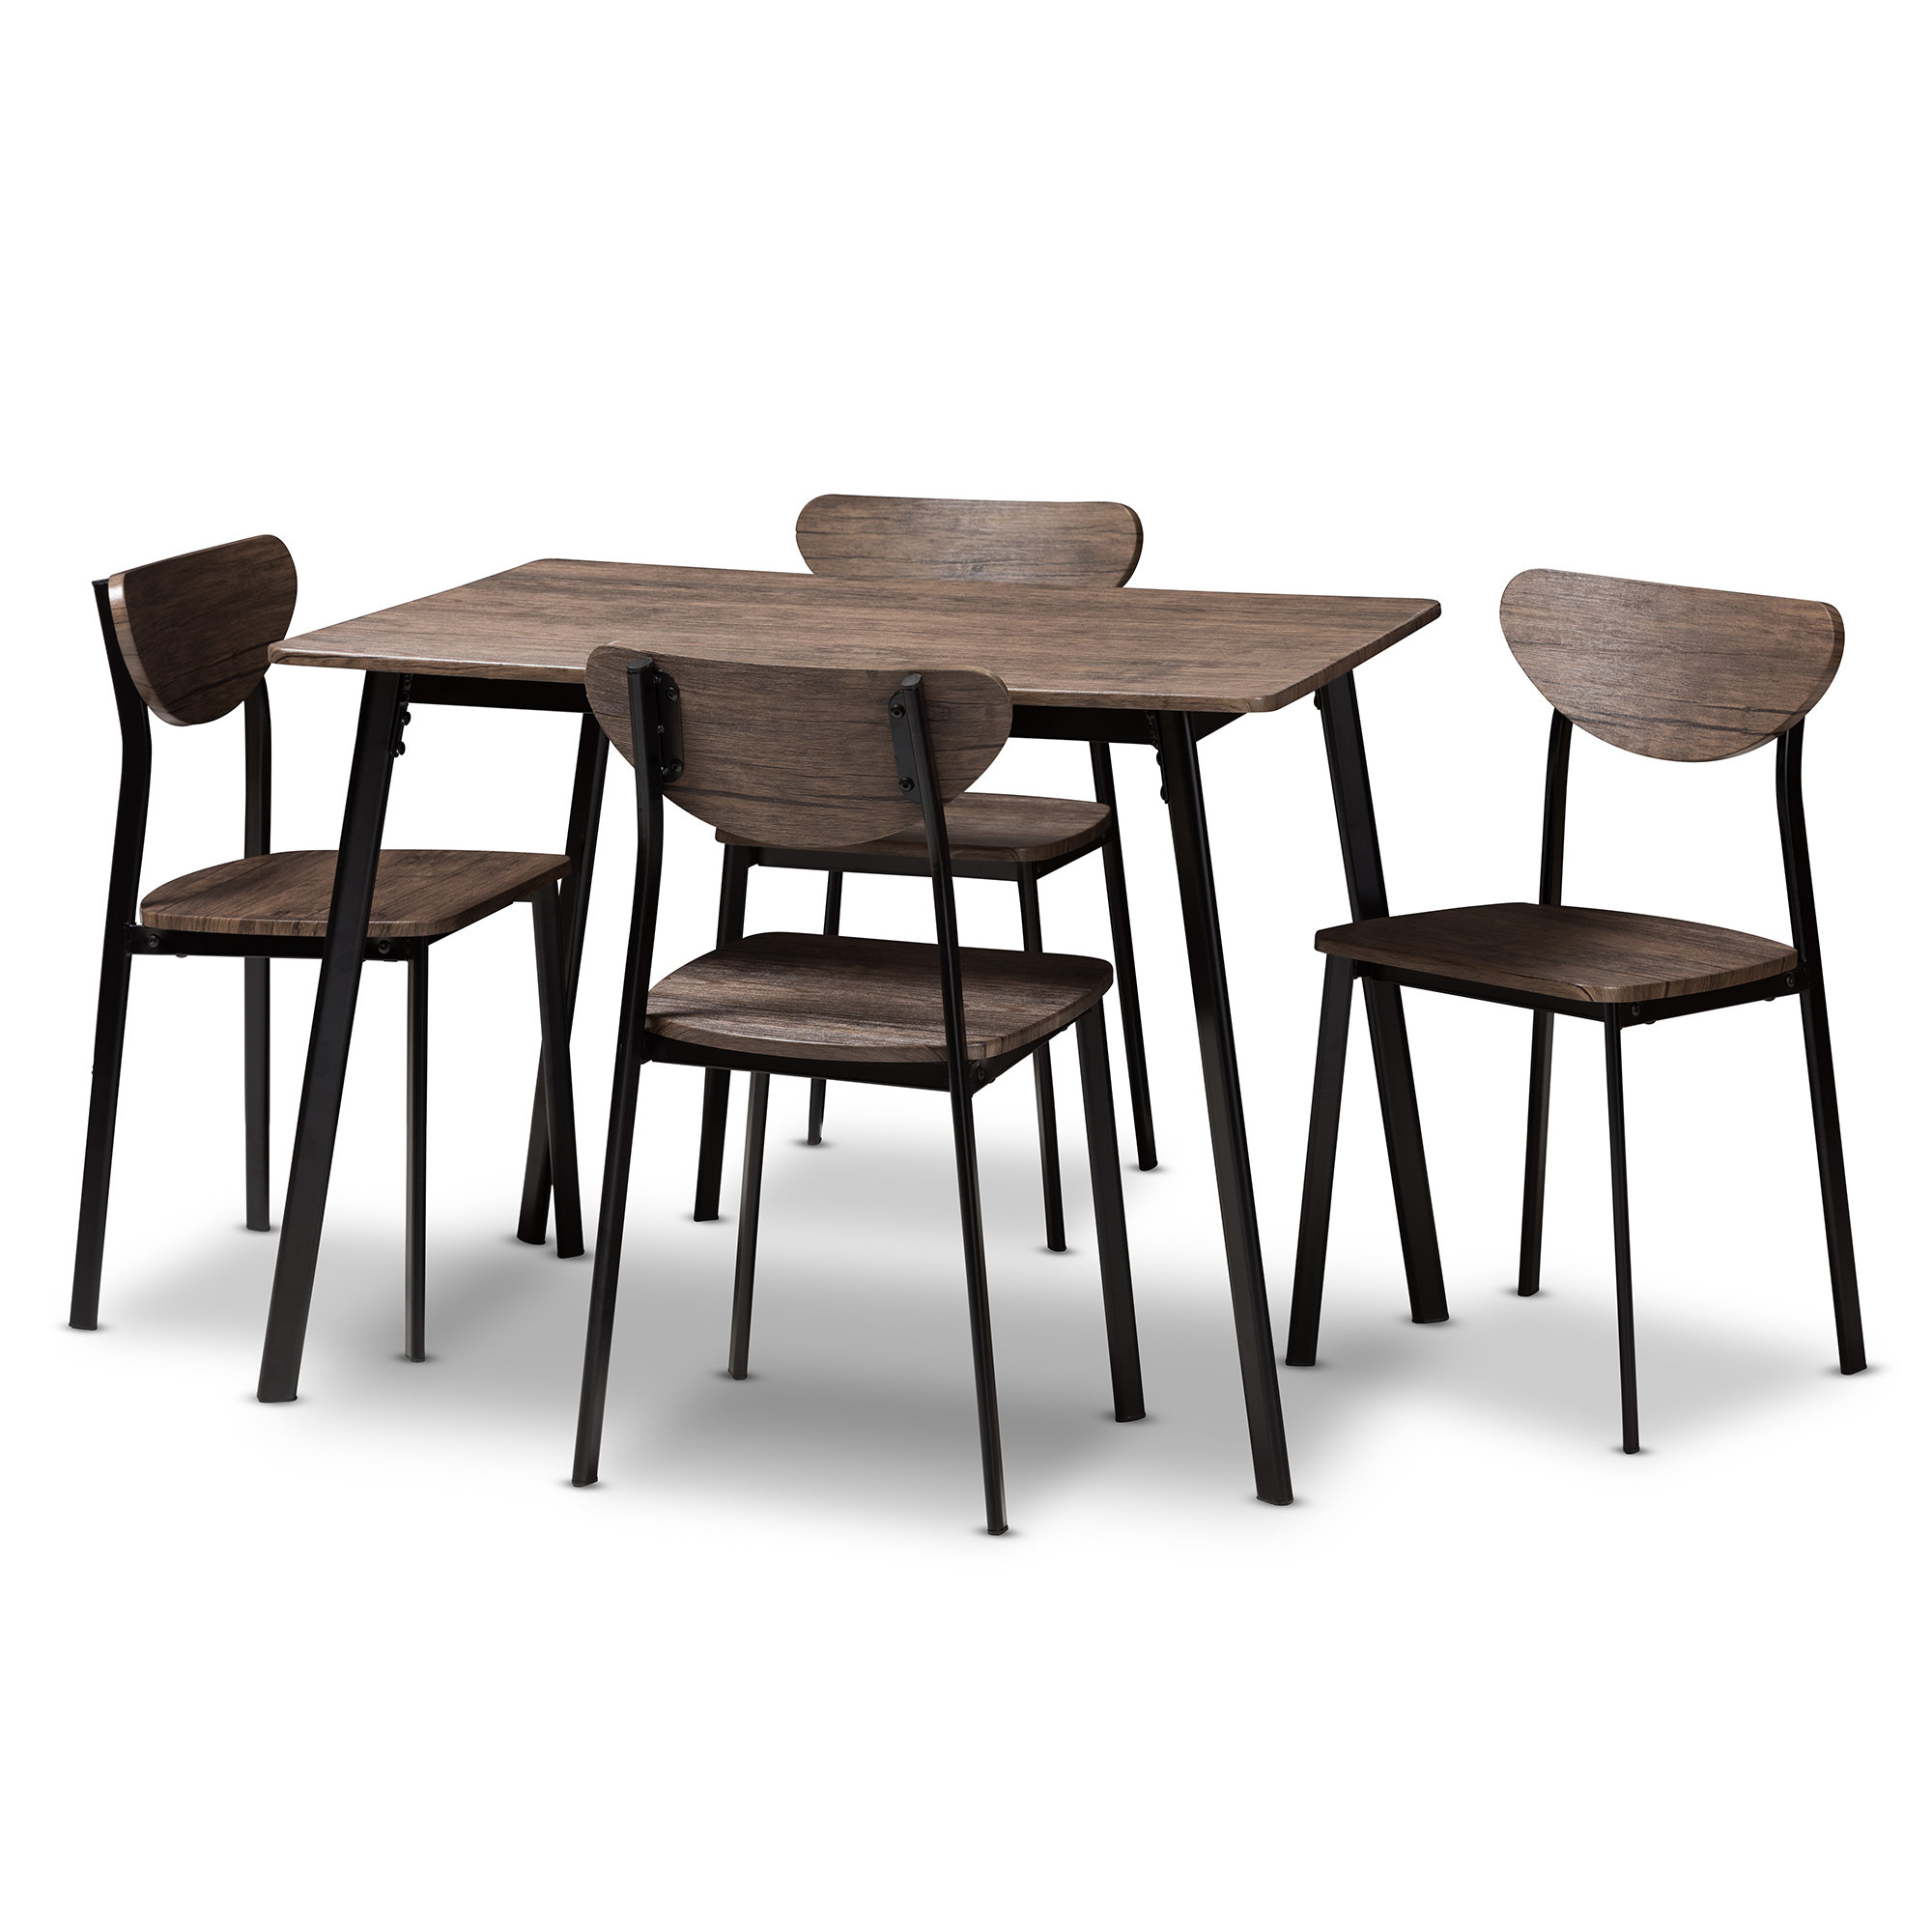 Tejeda 5 Piece Dining Set Regarding 2018 Wiggs 5 Piece Dining Sets (View 7 of 20)